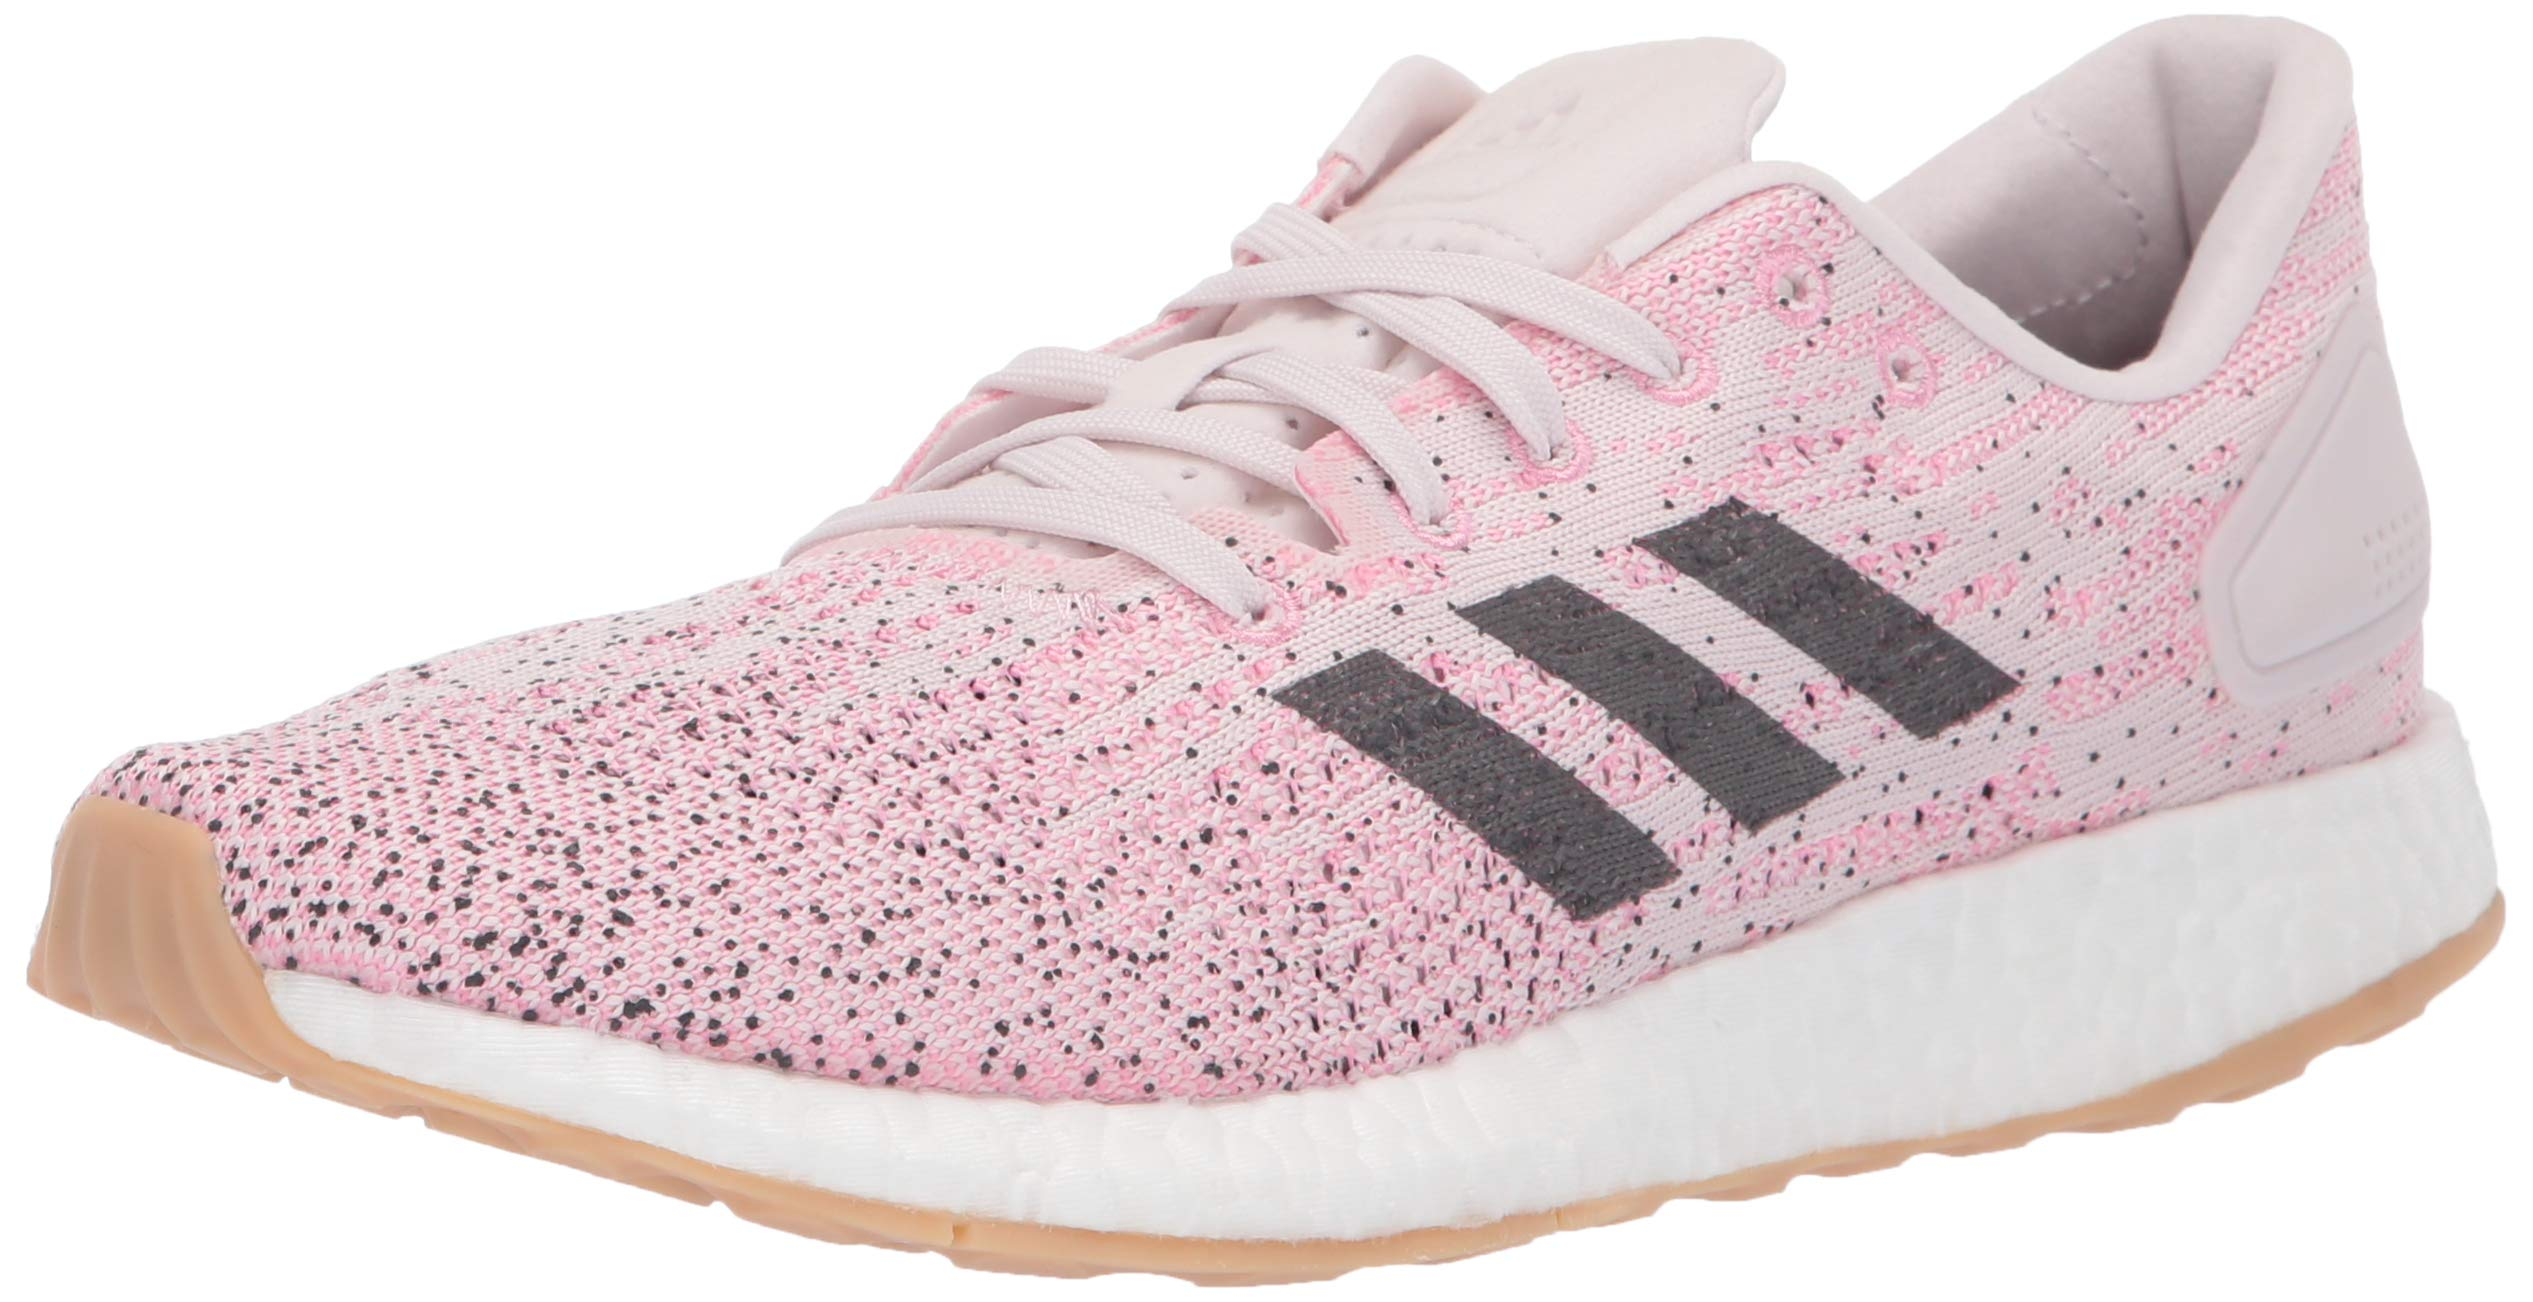 adidas Women's Pureboost DPR Running Shoes, True Pink/Carbon/Orchid Tint, 5.5 M US